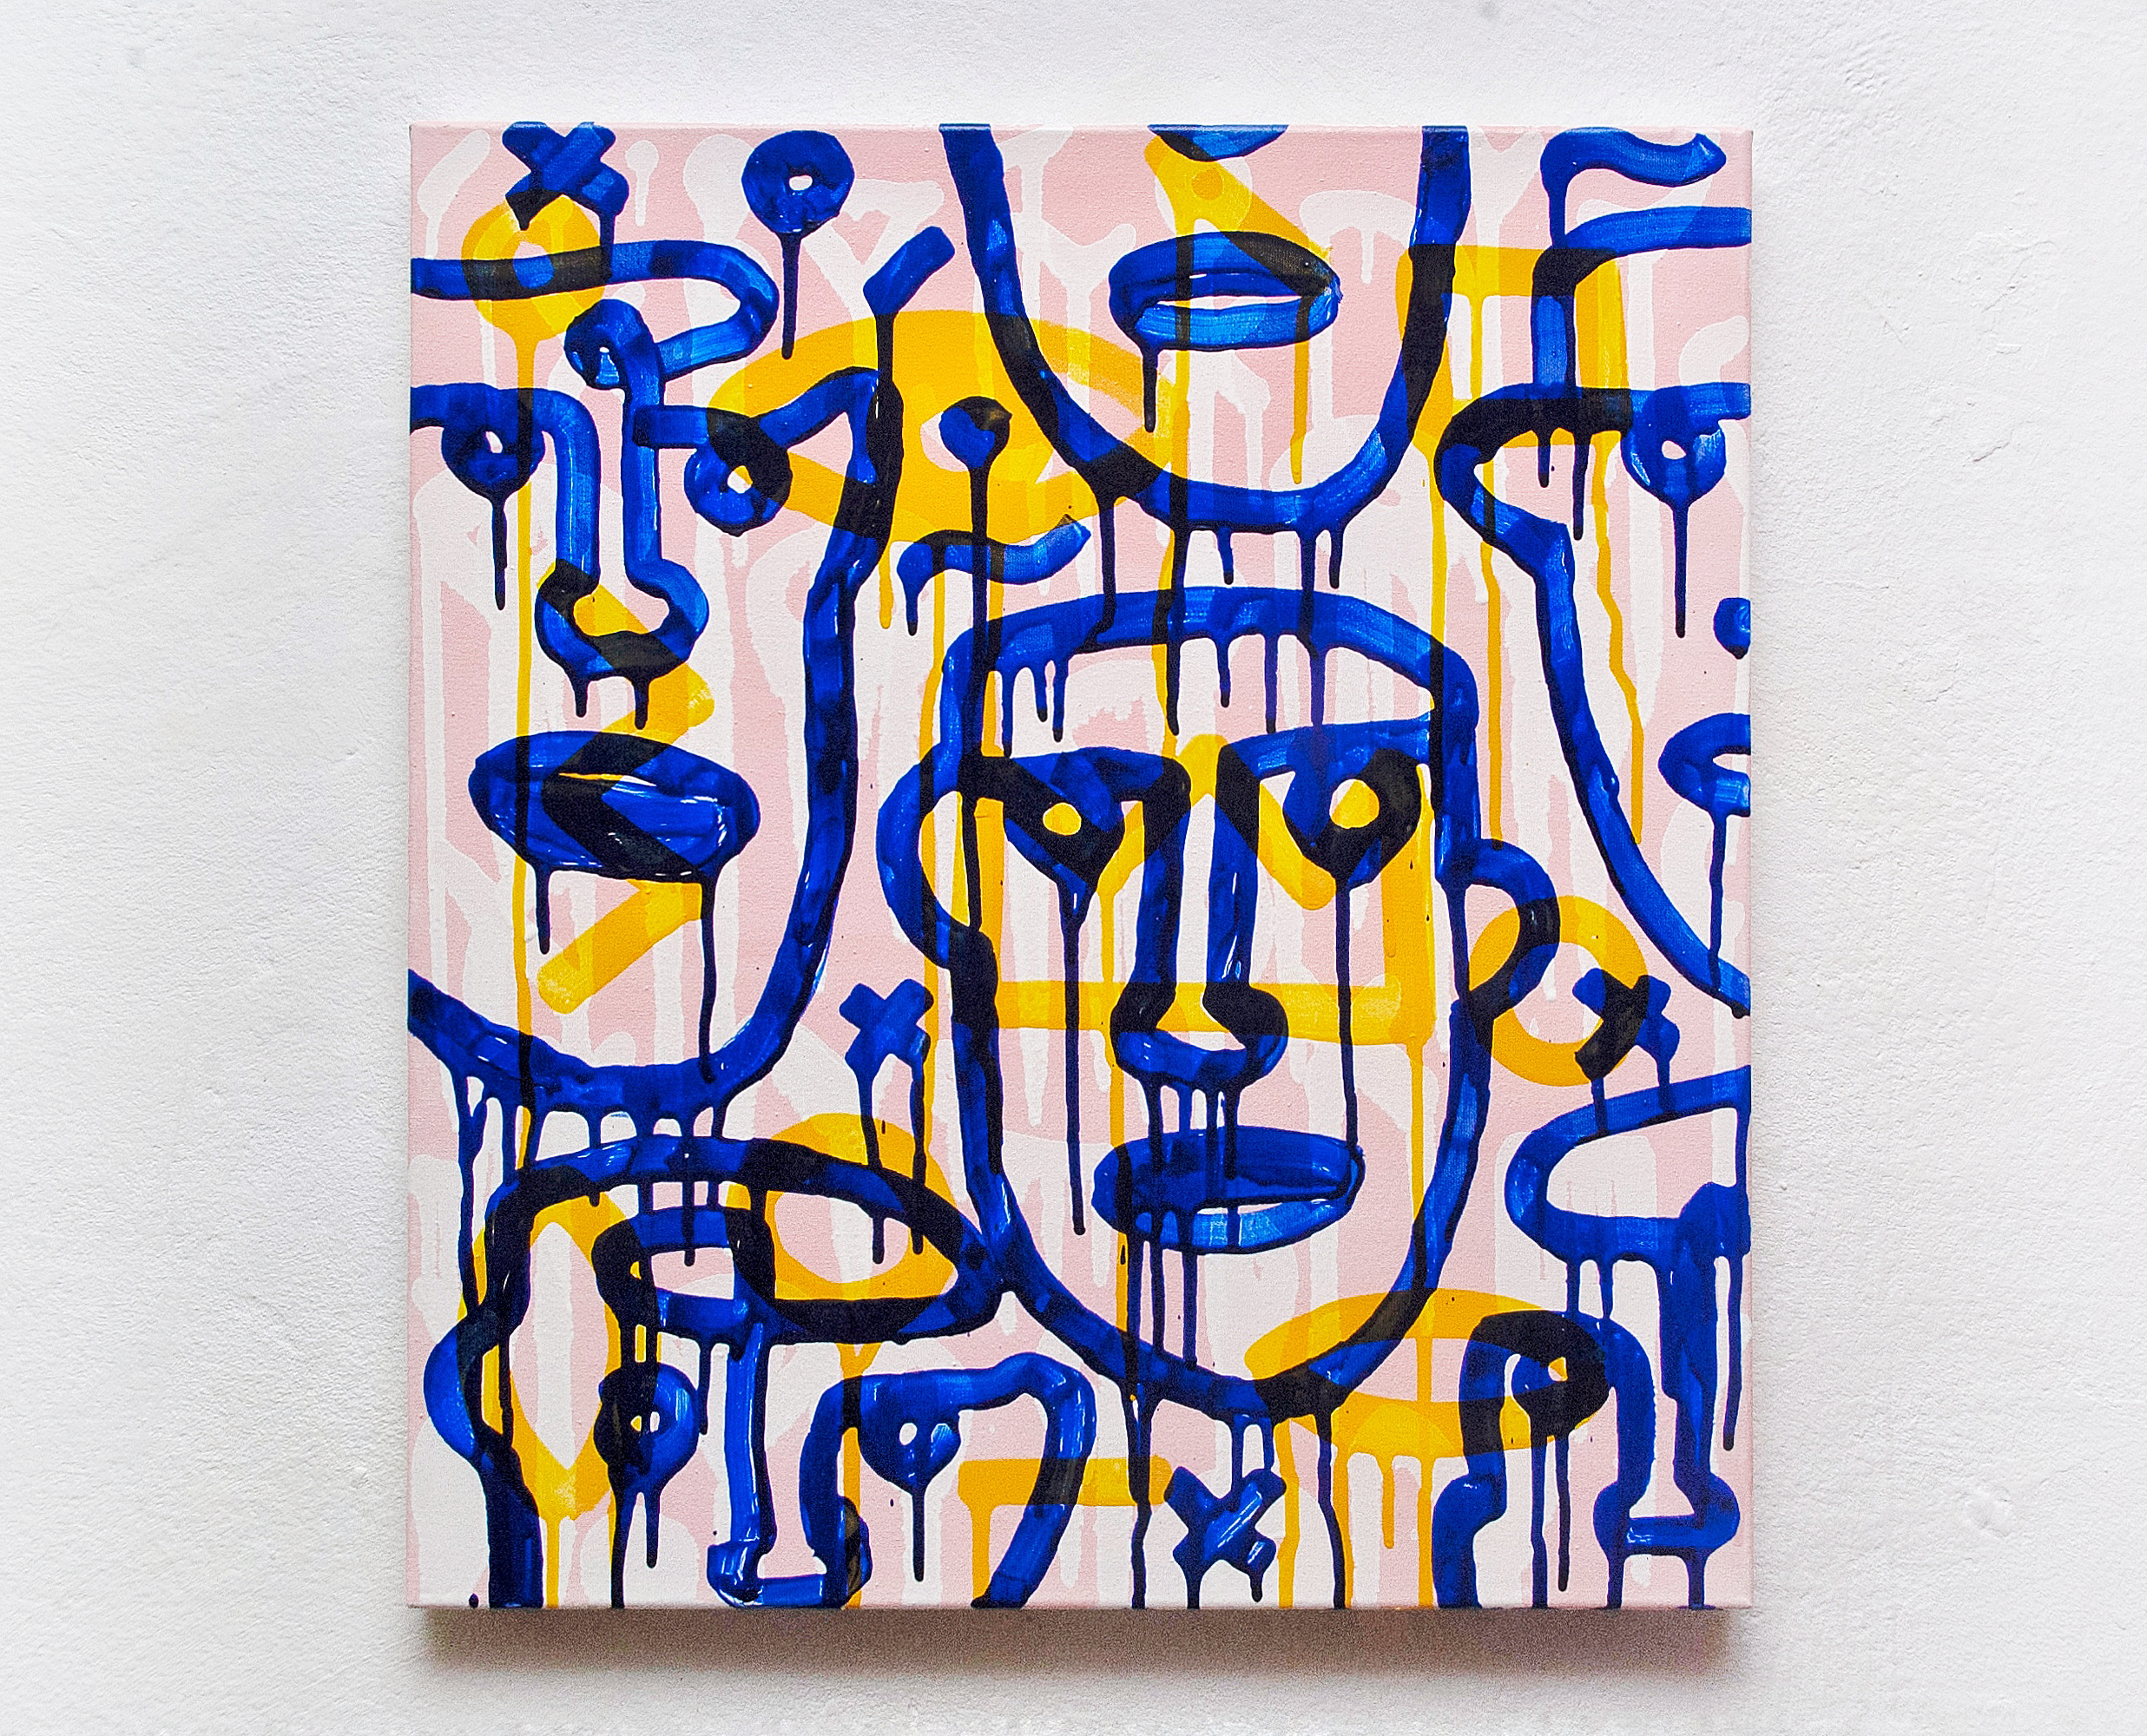 The boundary of hostility outside the realm of understanding - contemporary Ukrainian art - blue monoline faces on layered background.